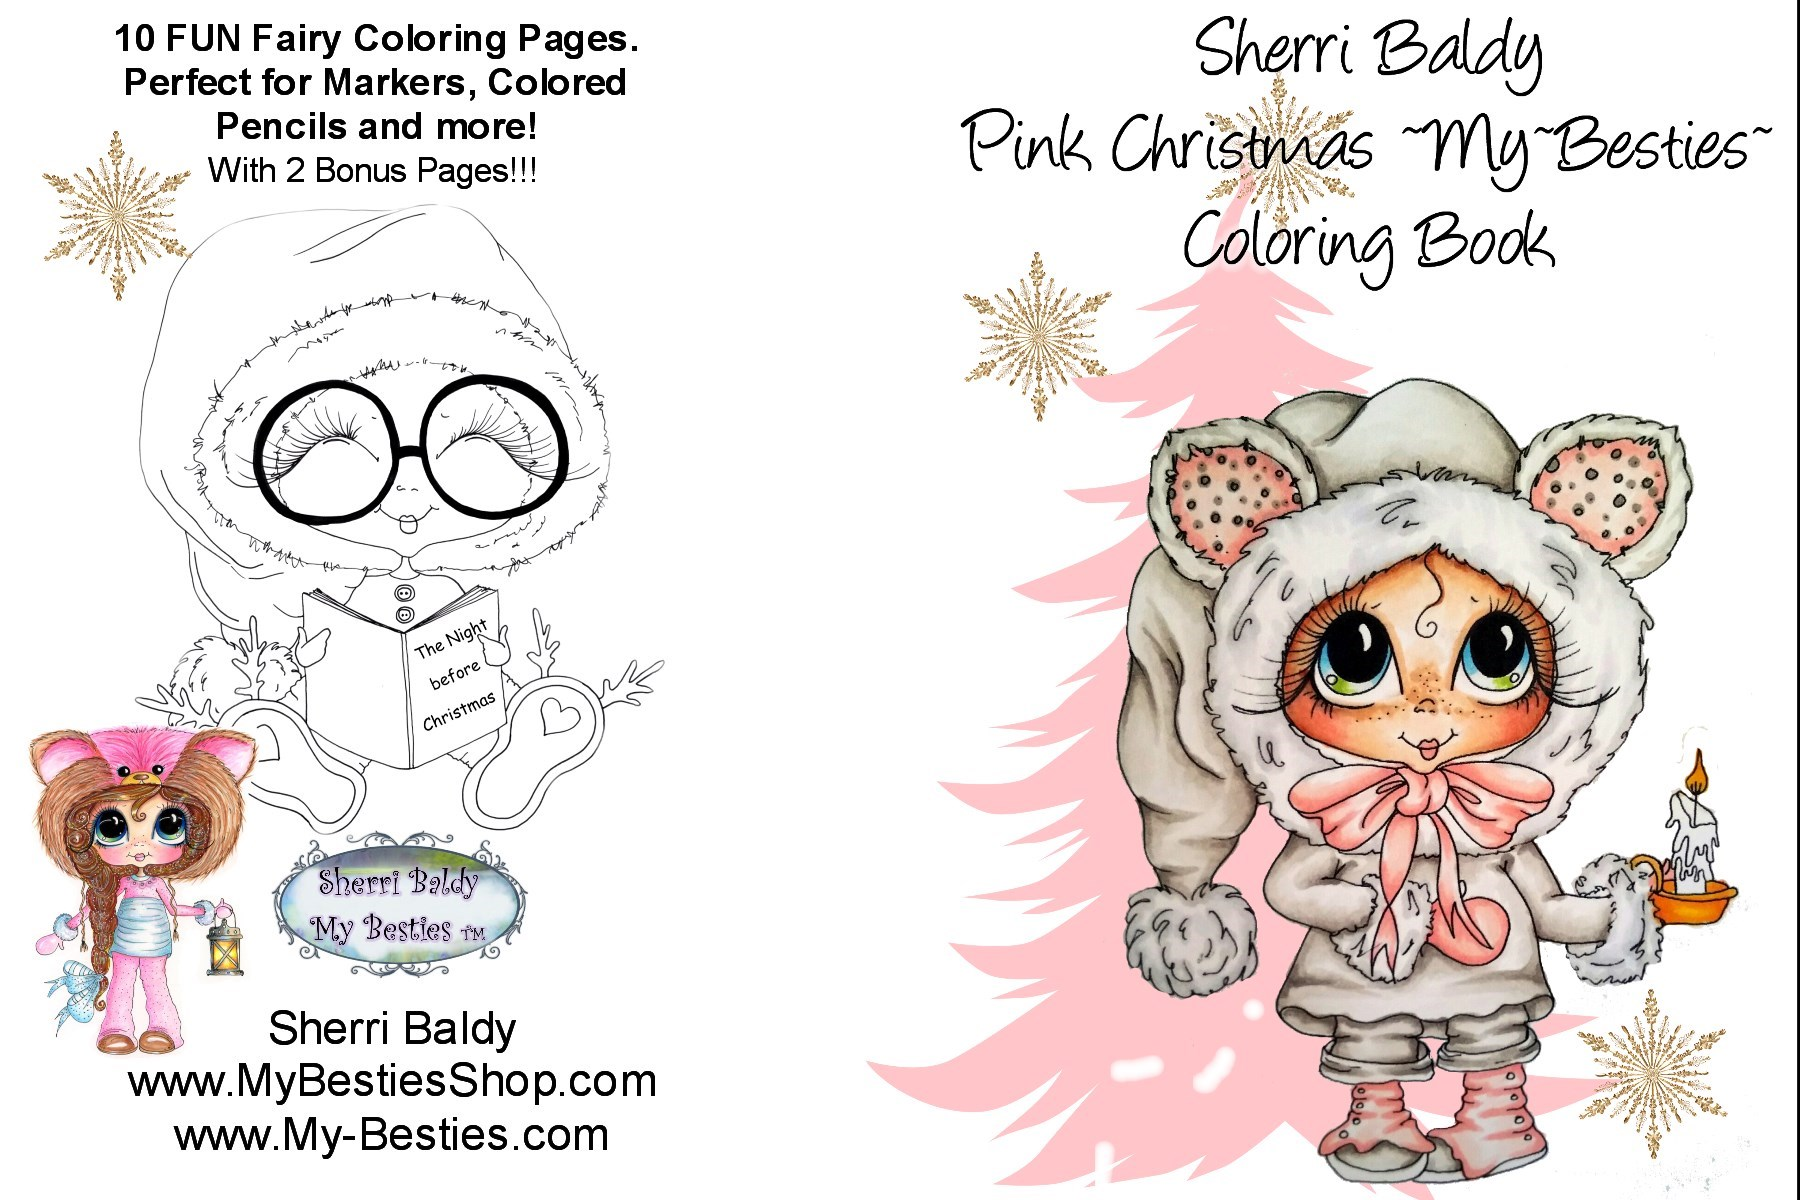 Pink Christmas Coloring Book Pages Packet 5 X 7 10 2 Bouns Big Eye Head Dolls My Bestie By Sherri Baldy